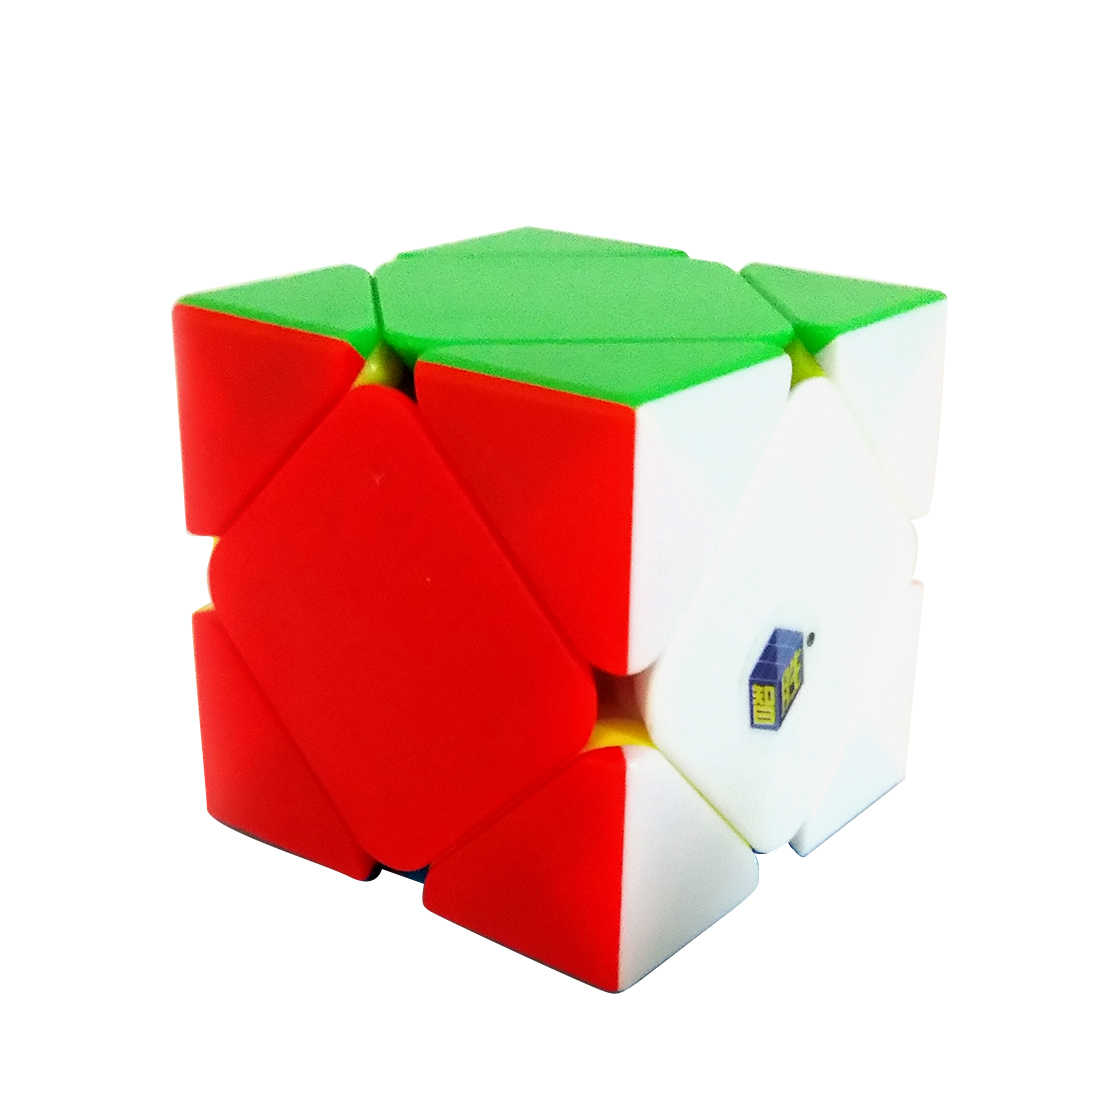 Yuxin Heiqilin 3x3x3 Torsion Oblique Twist Magic Cube Puzzle Toy for Brain Training  - Colorful